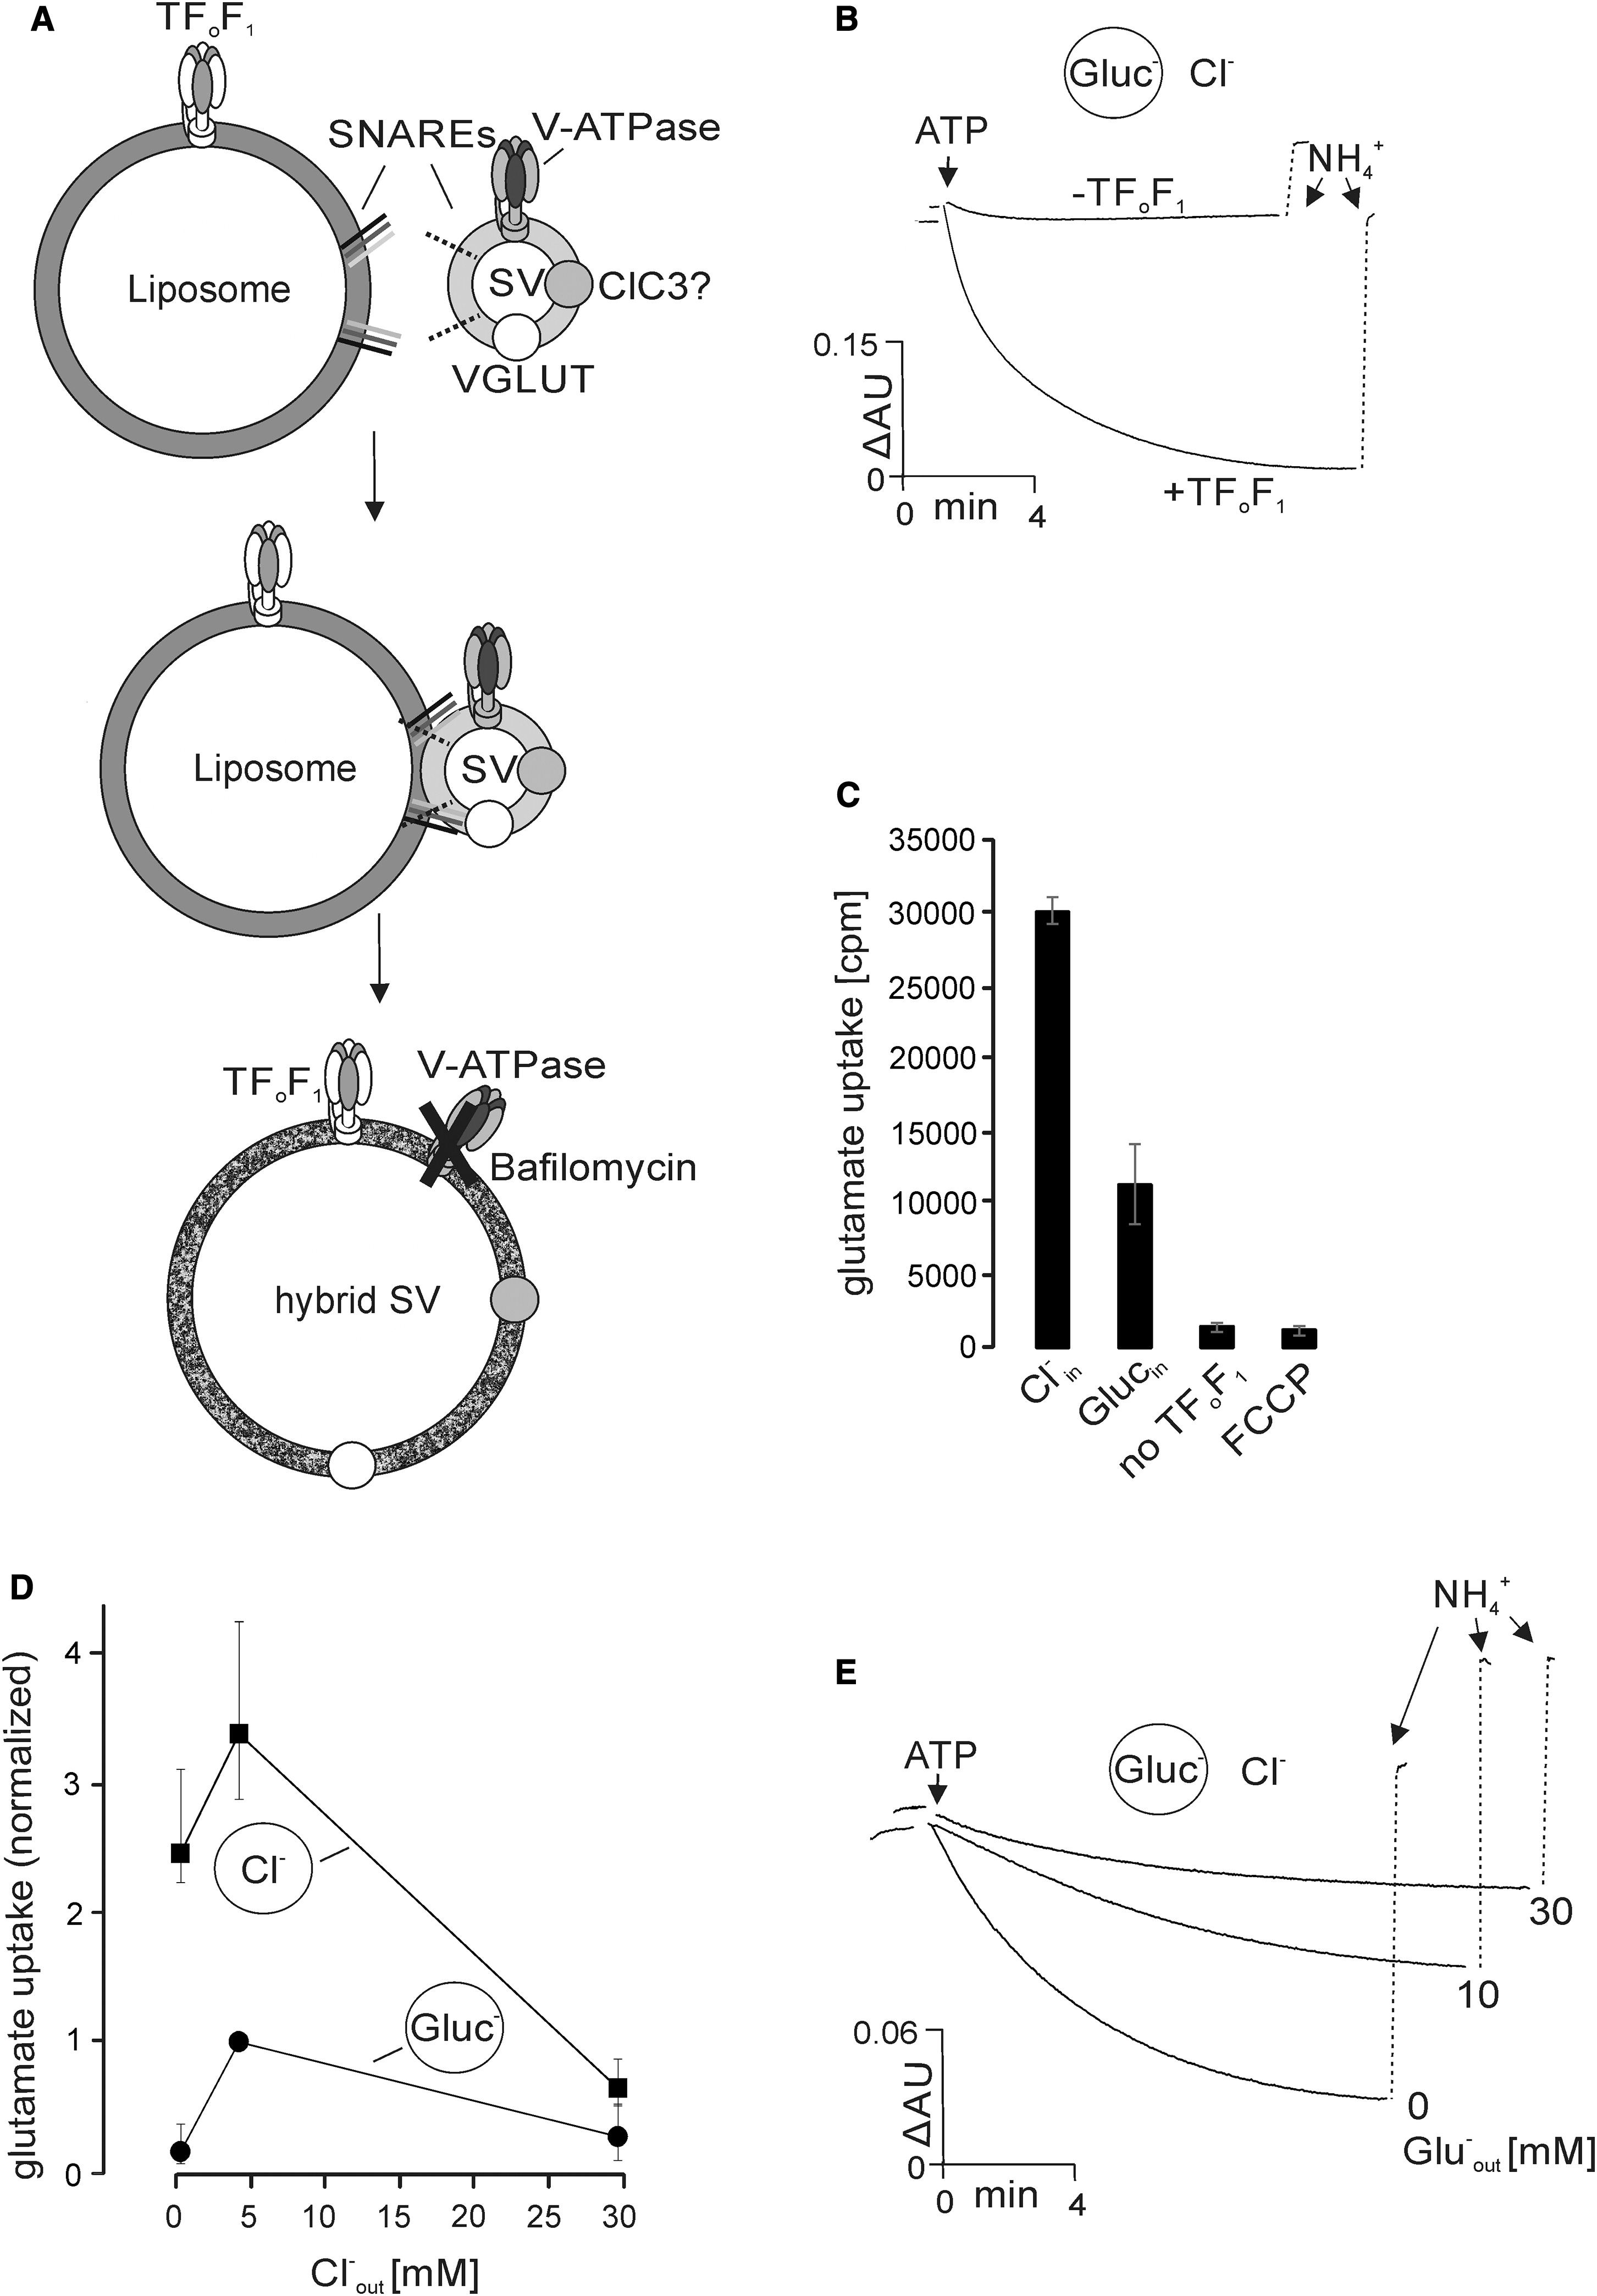 Vesicular Glutamate Transporters Use Flexible Anion And Cation Binding Sites For Efficient